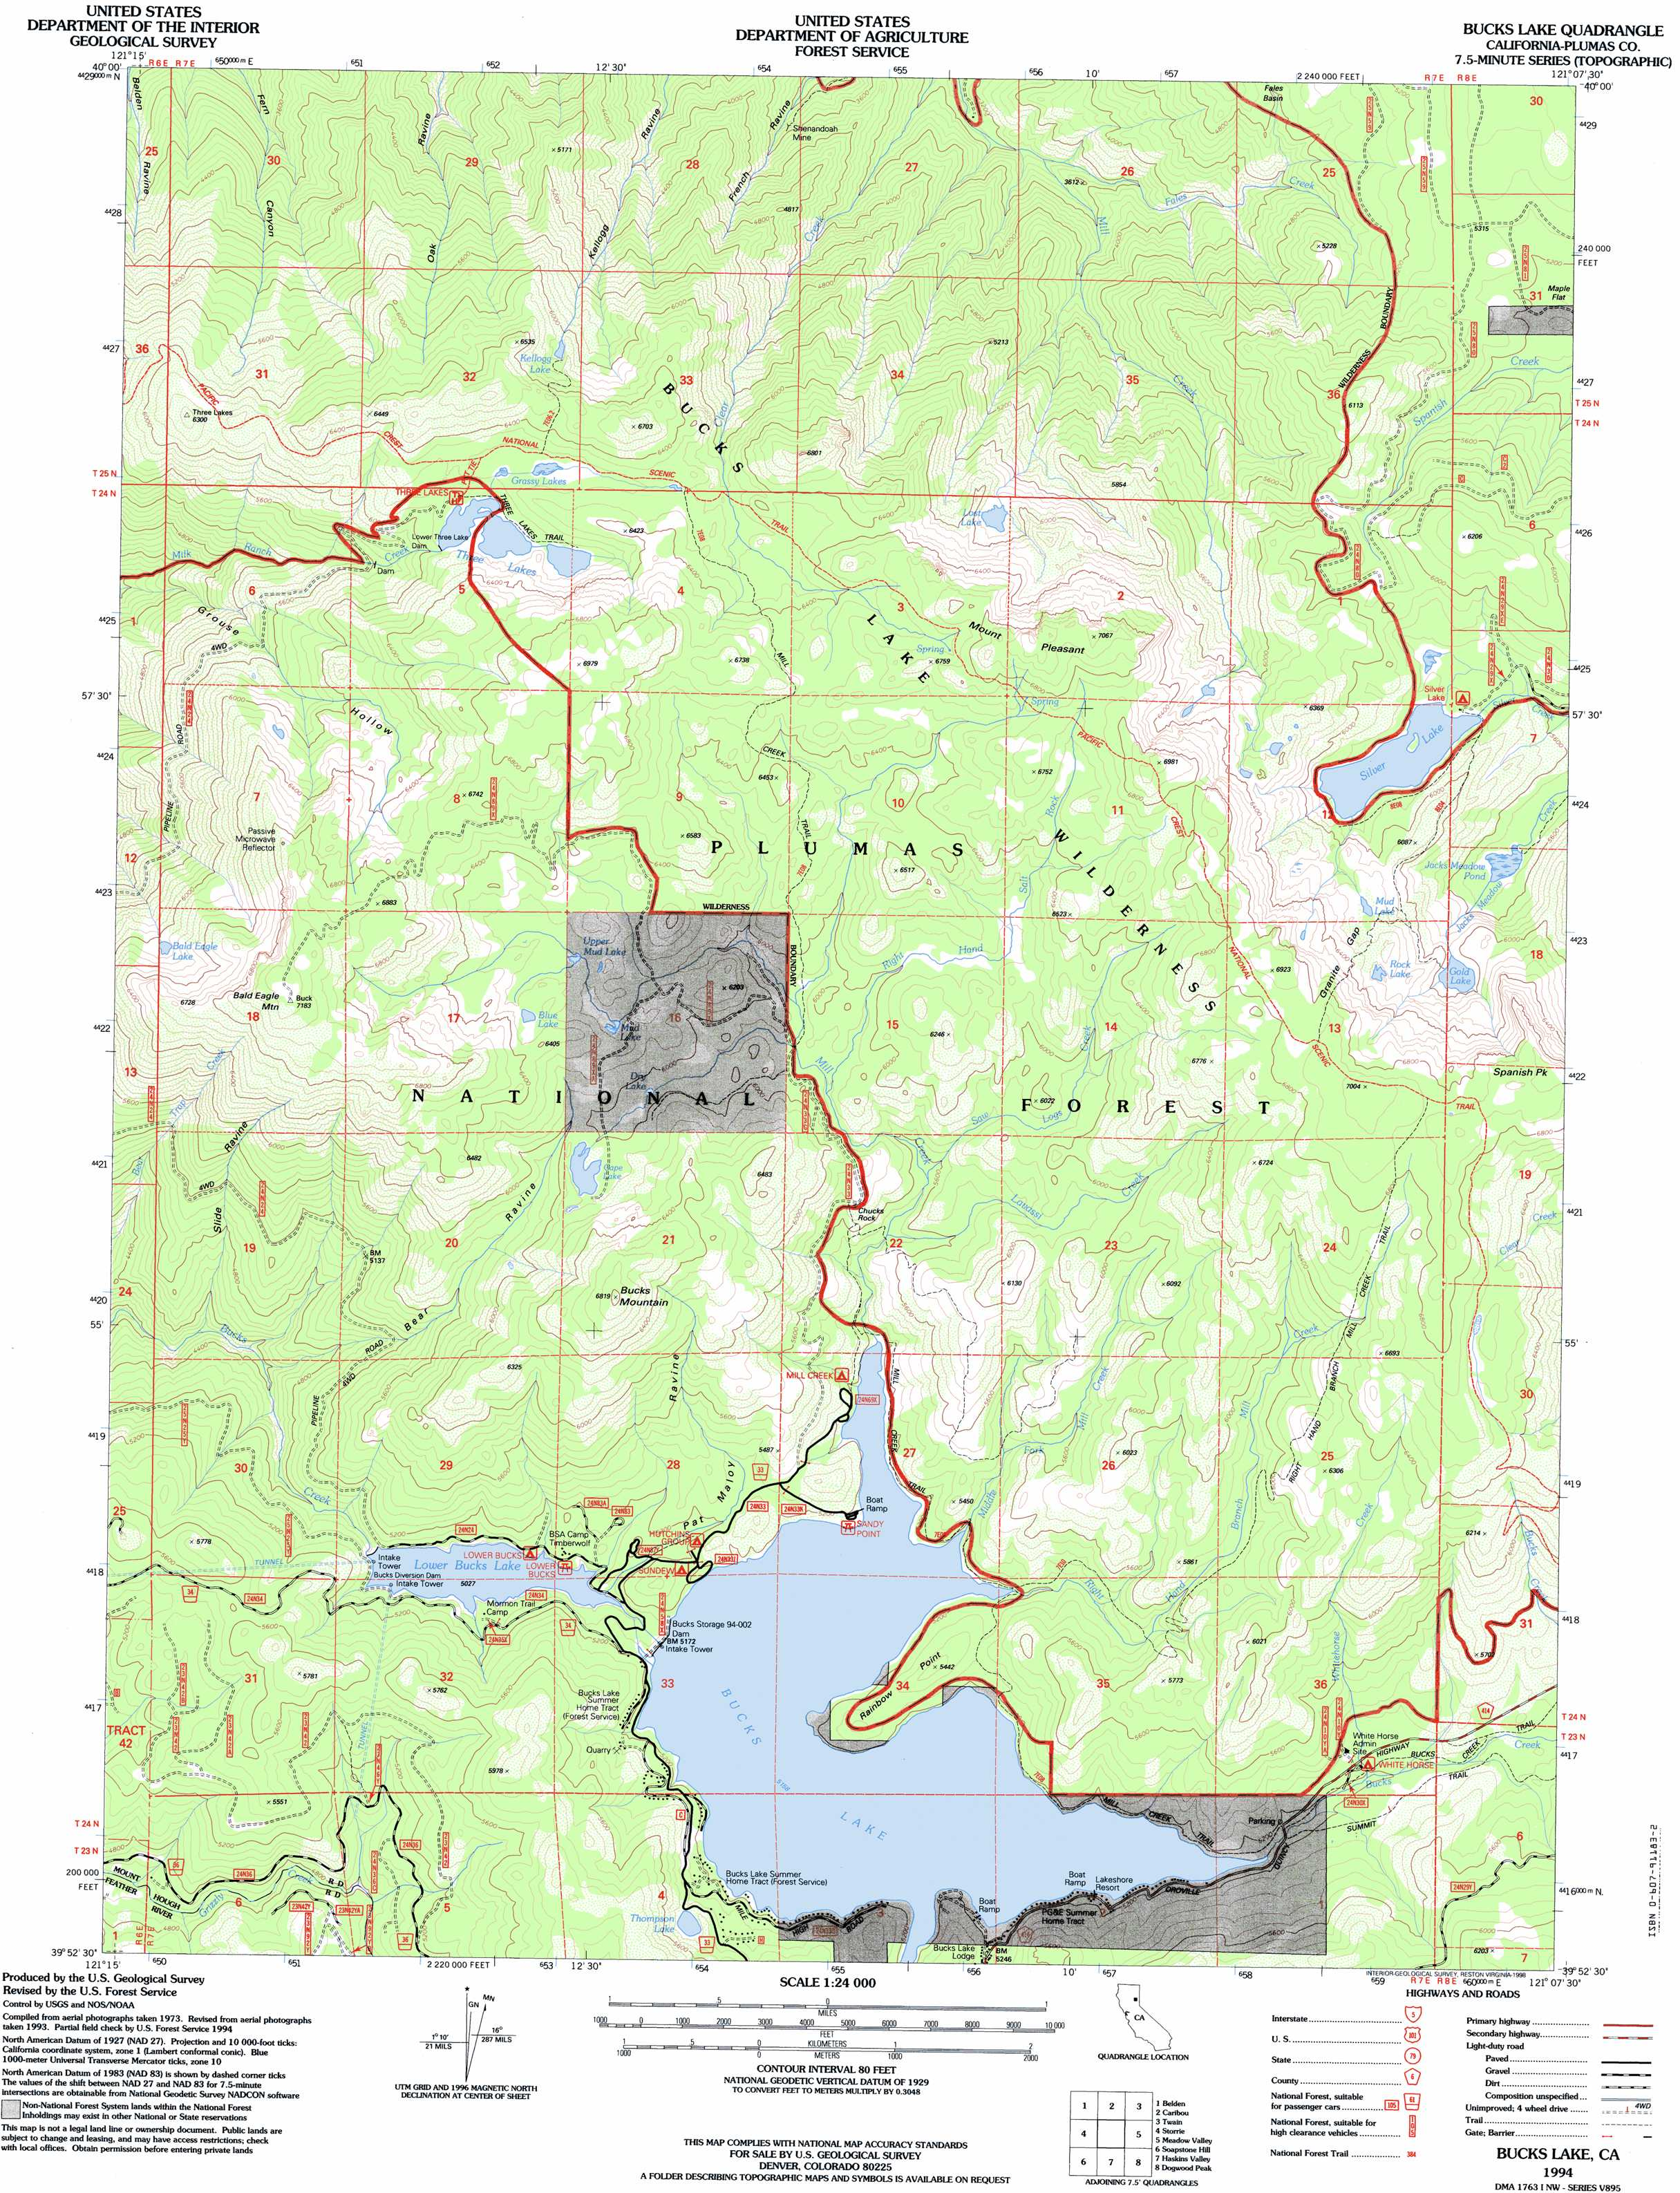 Topographic Map Of Usa World Map Global Index Map Free Shipping - Topographic map of us states